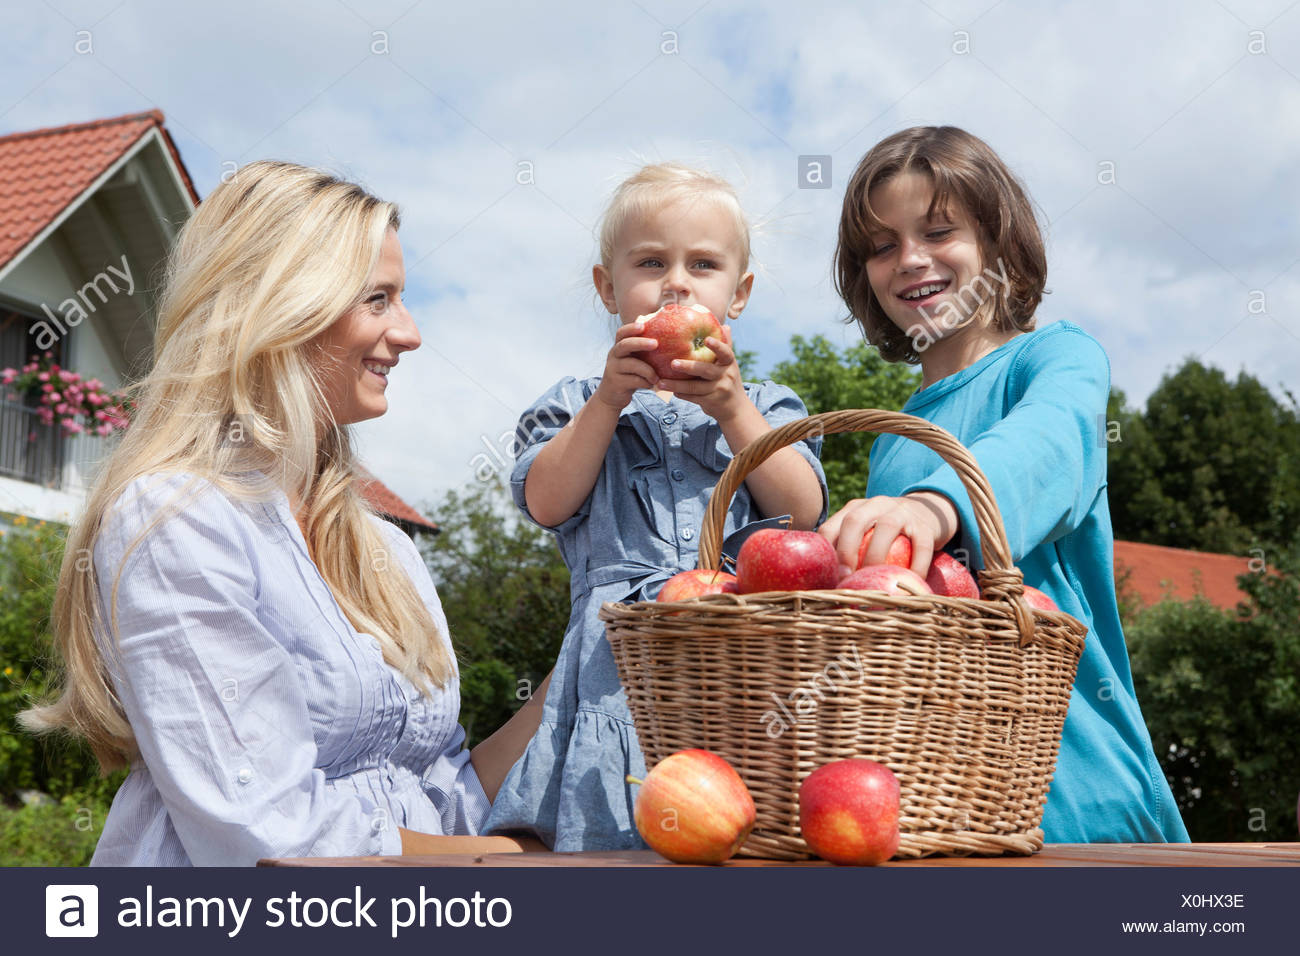 Germany, Munich, Mother with children eating apples from basket - Stock Image